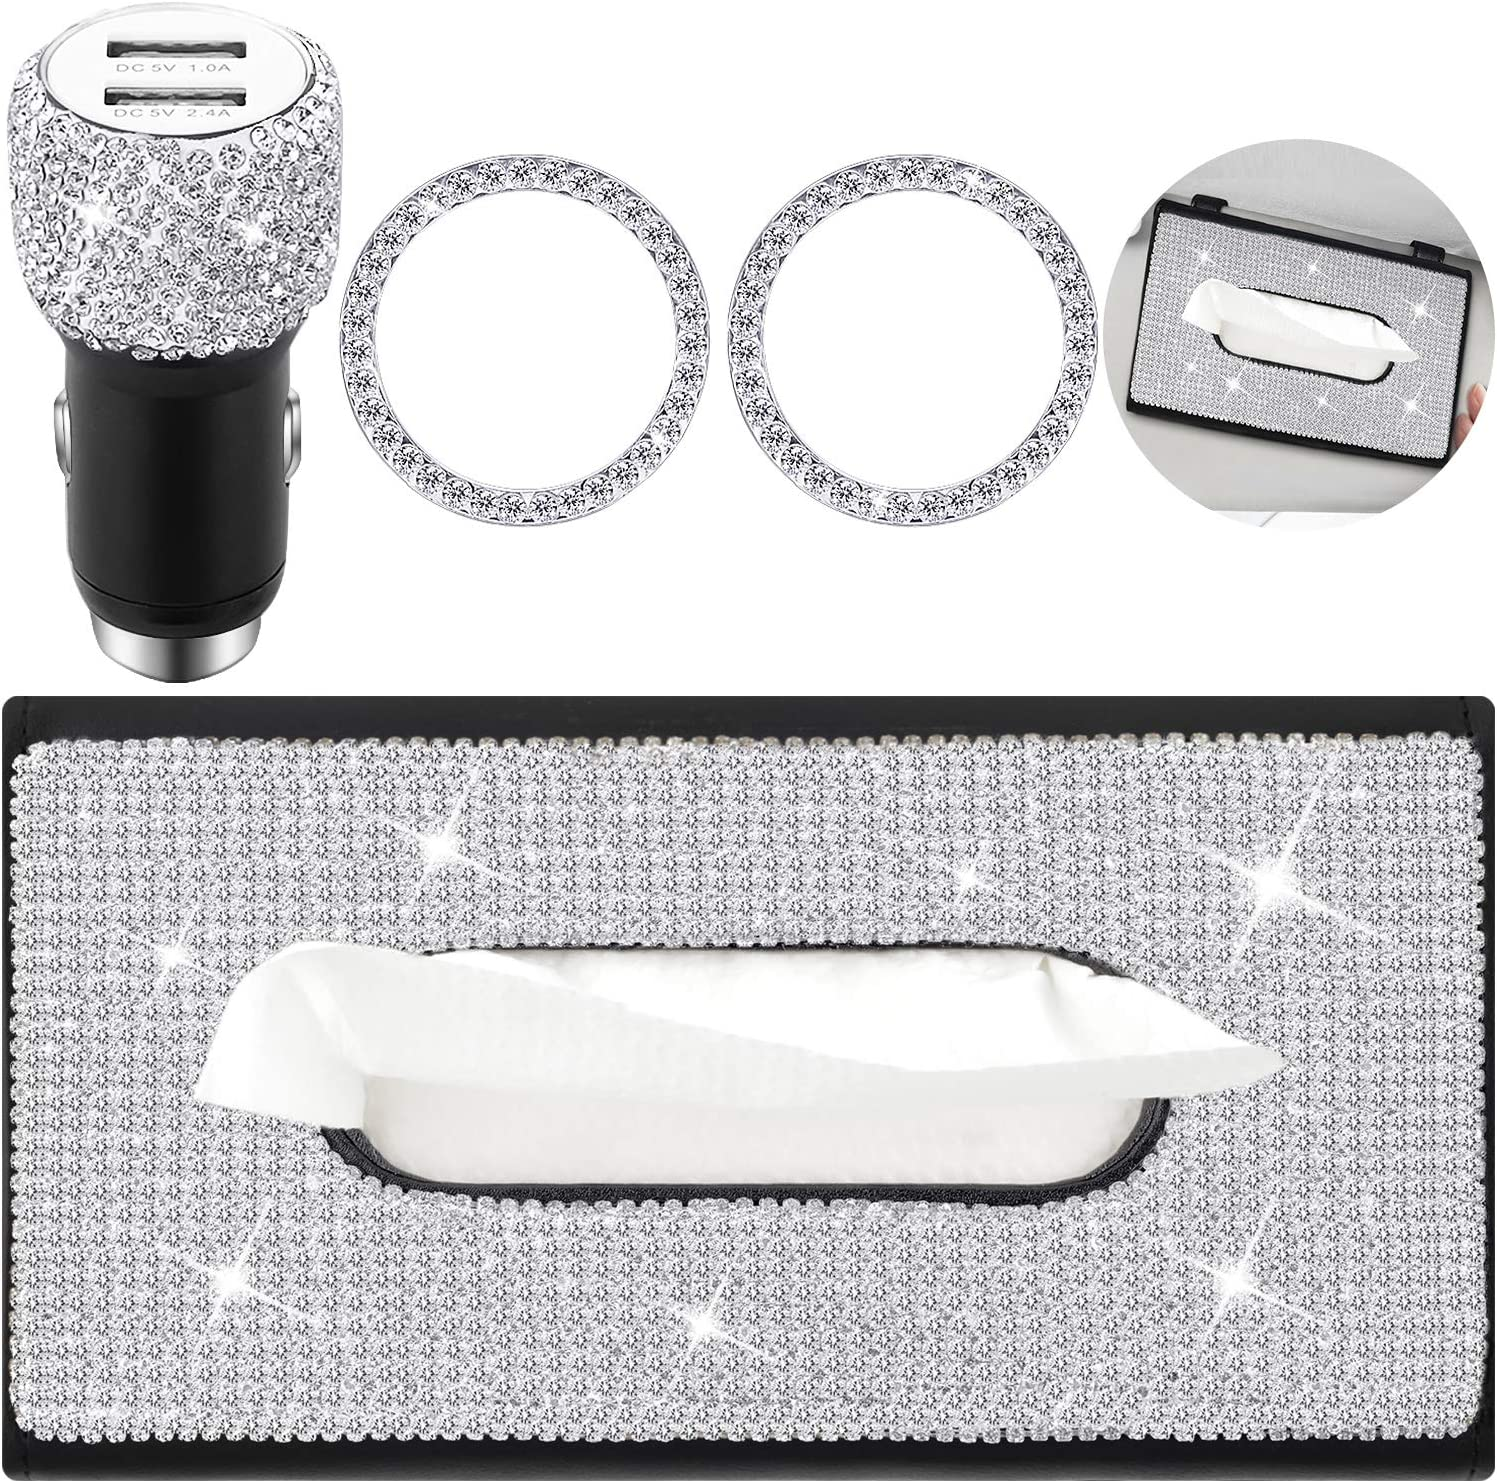 Including Crystal Car Visor Paper Towel Cover Case Crystal Car Dual Port USB and Crystal Interior Ring Emblem Sticker for Women Girls 4 Pieces Bling Car Accessories Set